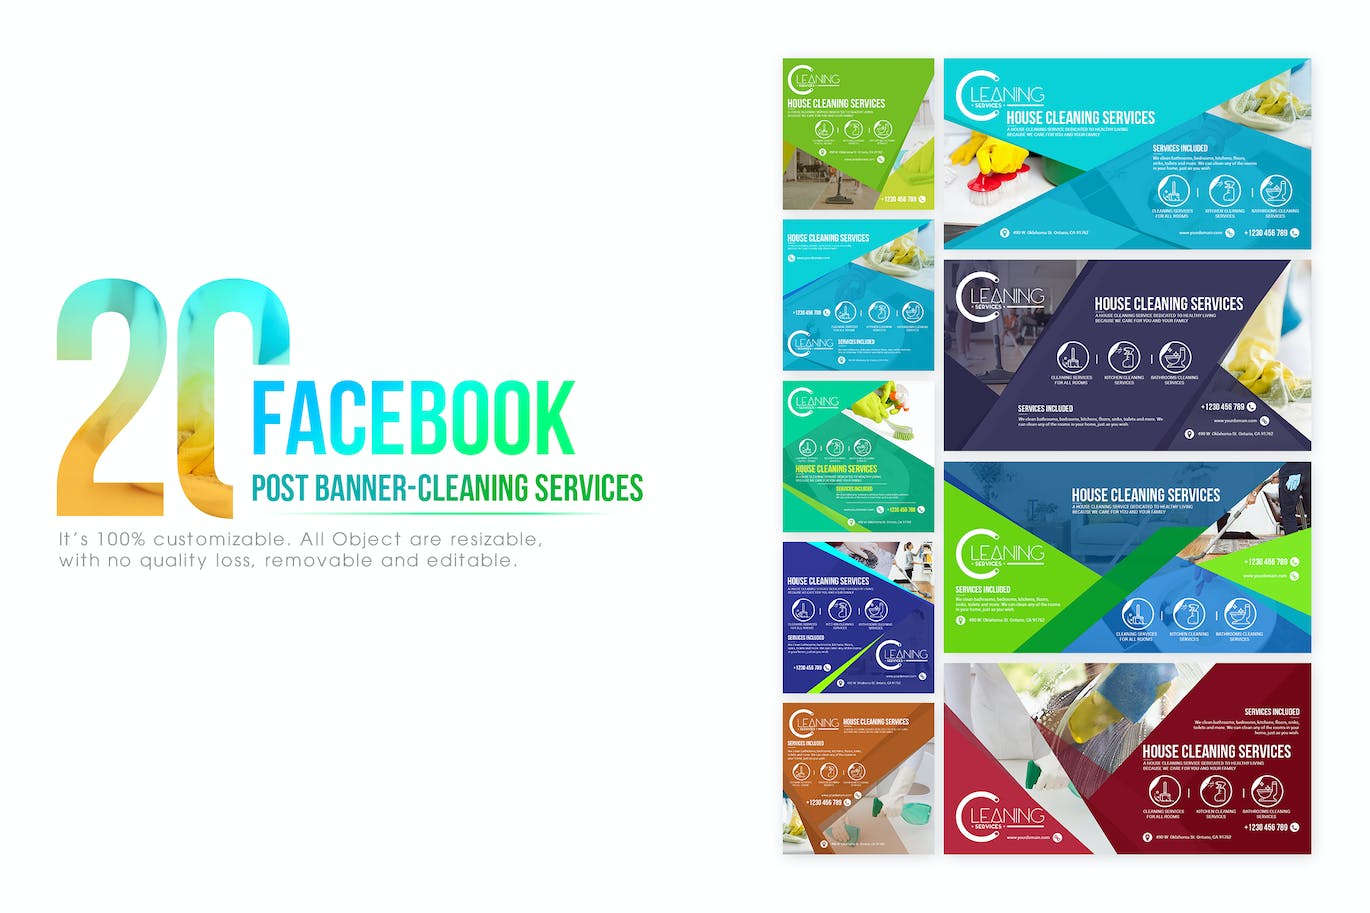 20 facebook post banner cleaning service by wutip on envato elements 20 facebook post banner cleaning service